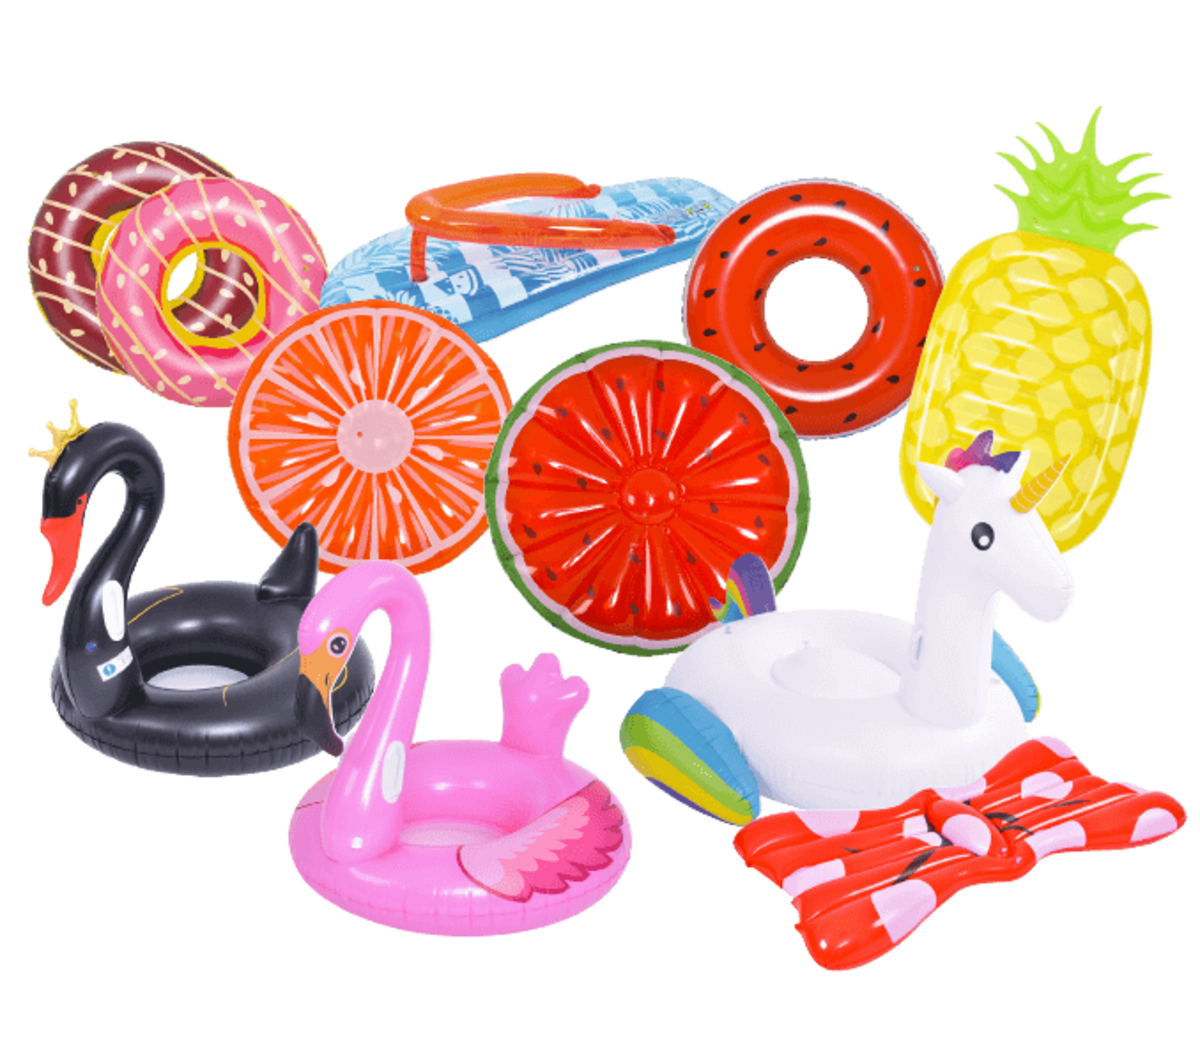 jouets gonflables